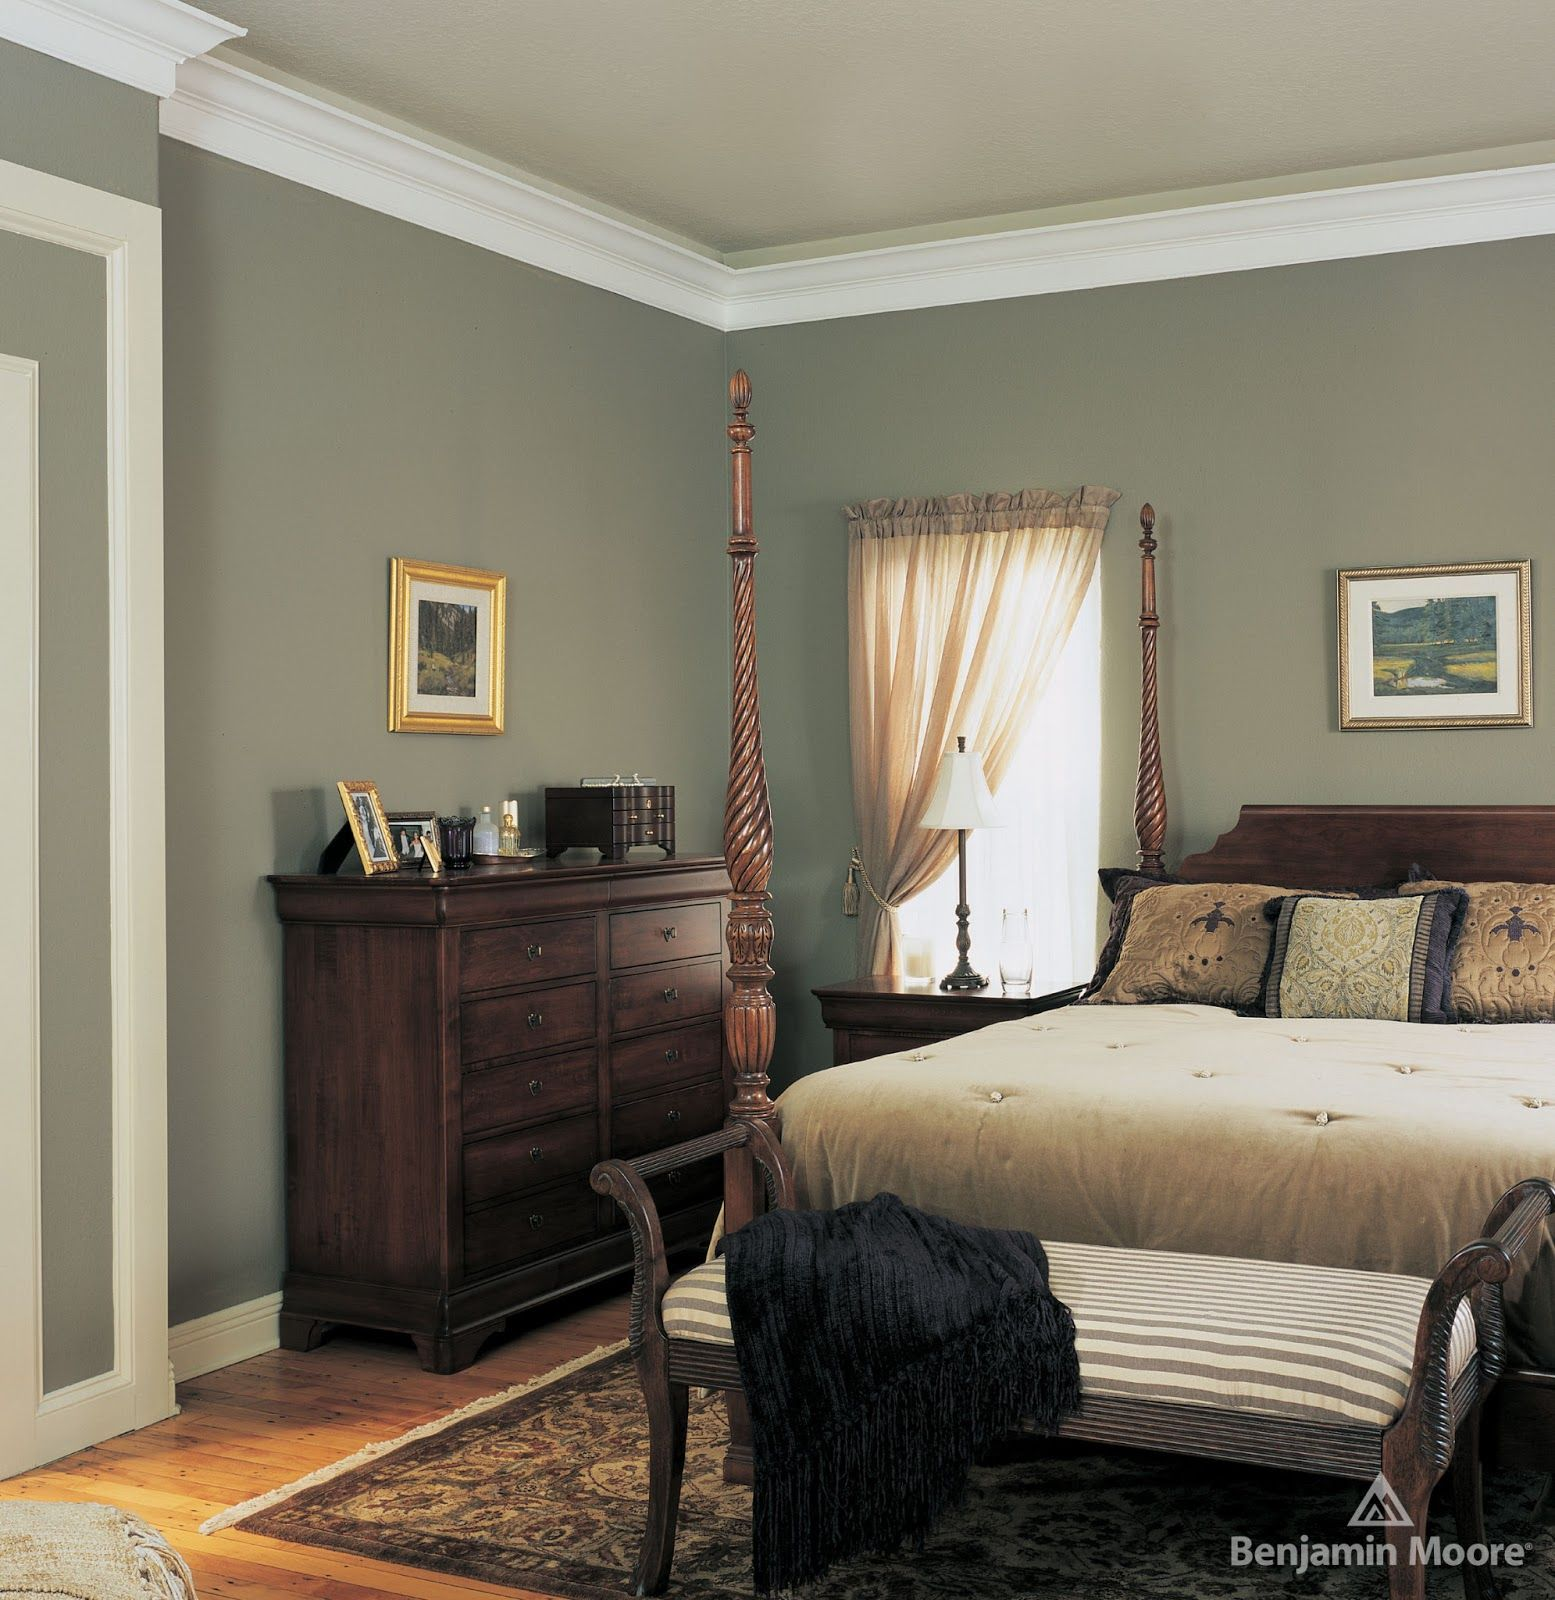 Factory Paint Decorating Benjamin Moore Regal Select Interior Paint Heather Gray Walls Benjamin Moore Bedroom Grey Walls Benjamin Moore